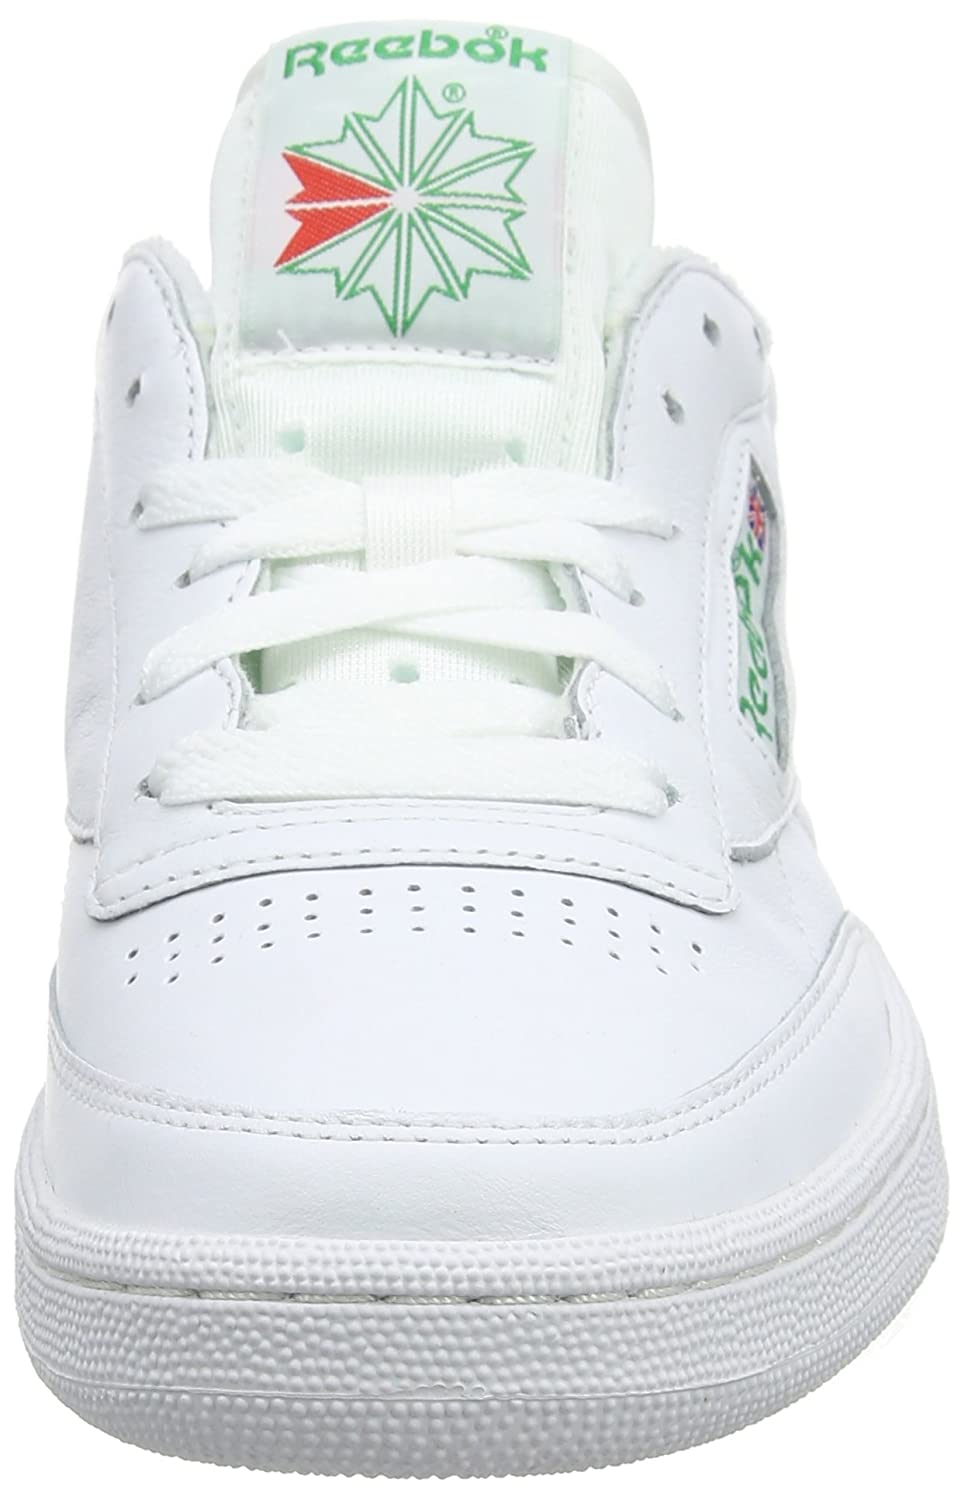 Reebok Men s Club C 85 Archive White Glen Green Excellen Leather Tennis  Shoes-10 UK India (44.5 EU) (11 US) (CN0645)  Buy Online at Low Prices in  India ... 6da40d4eb